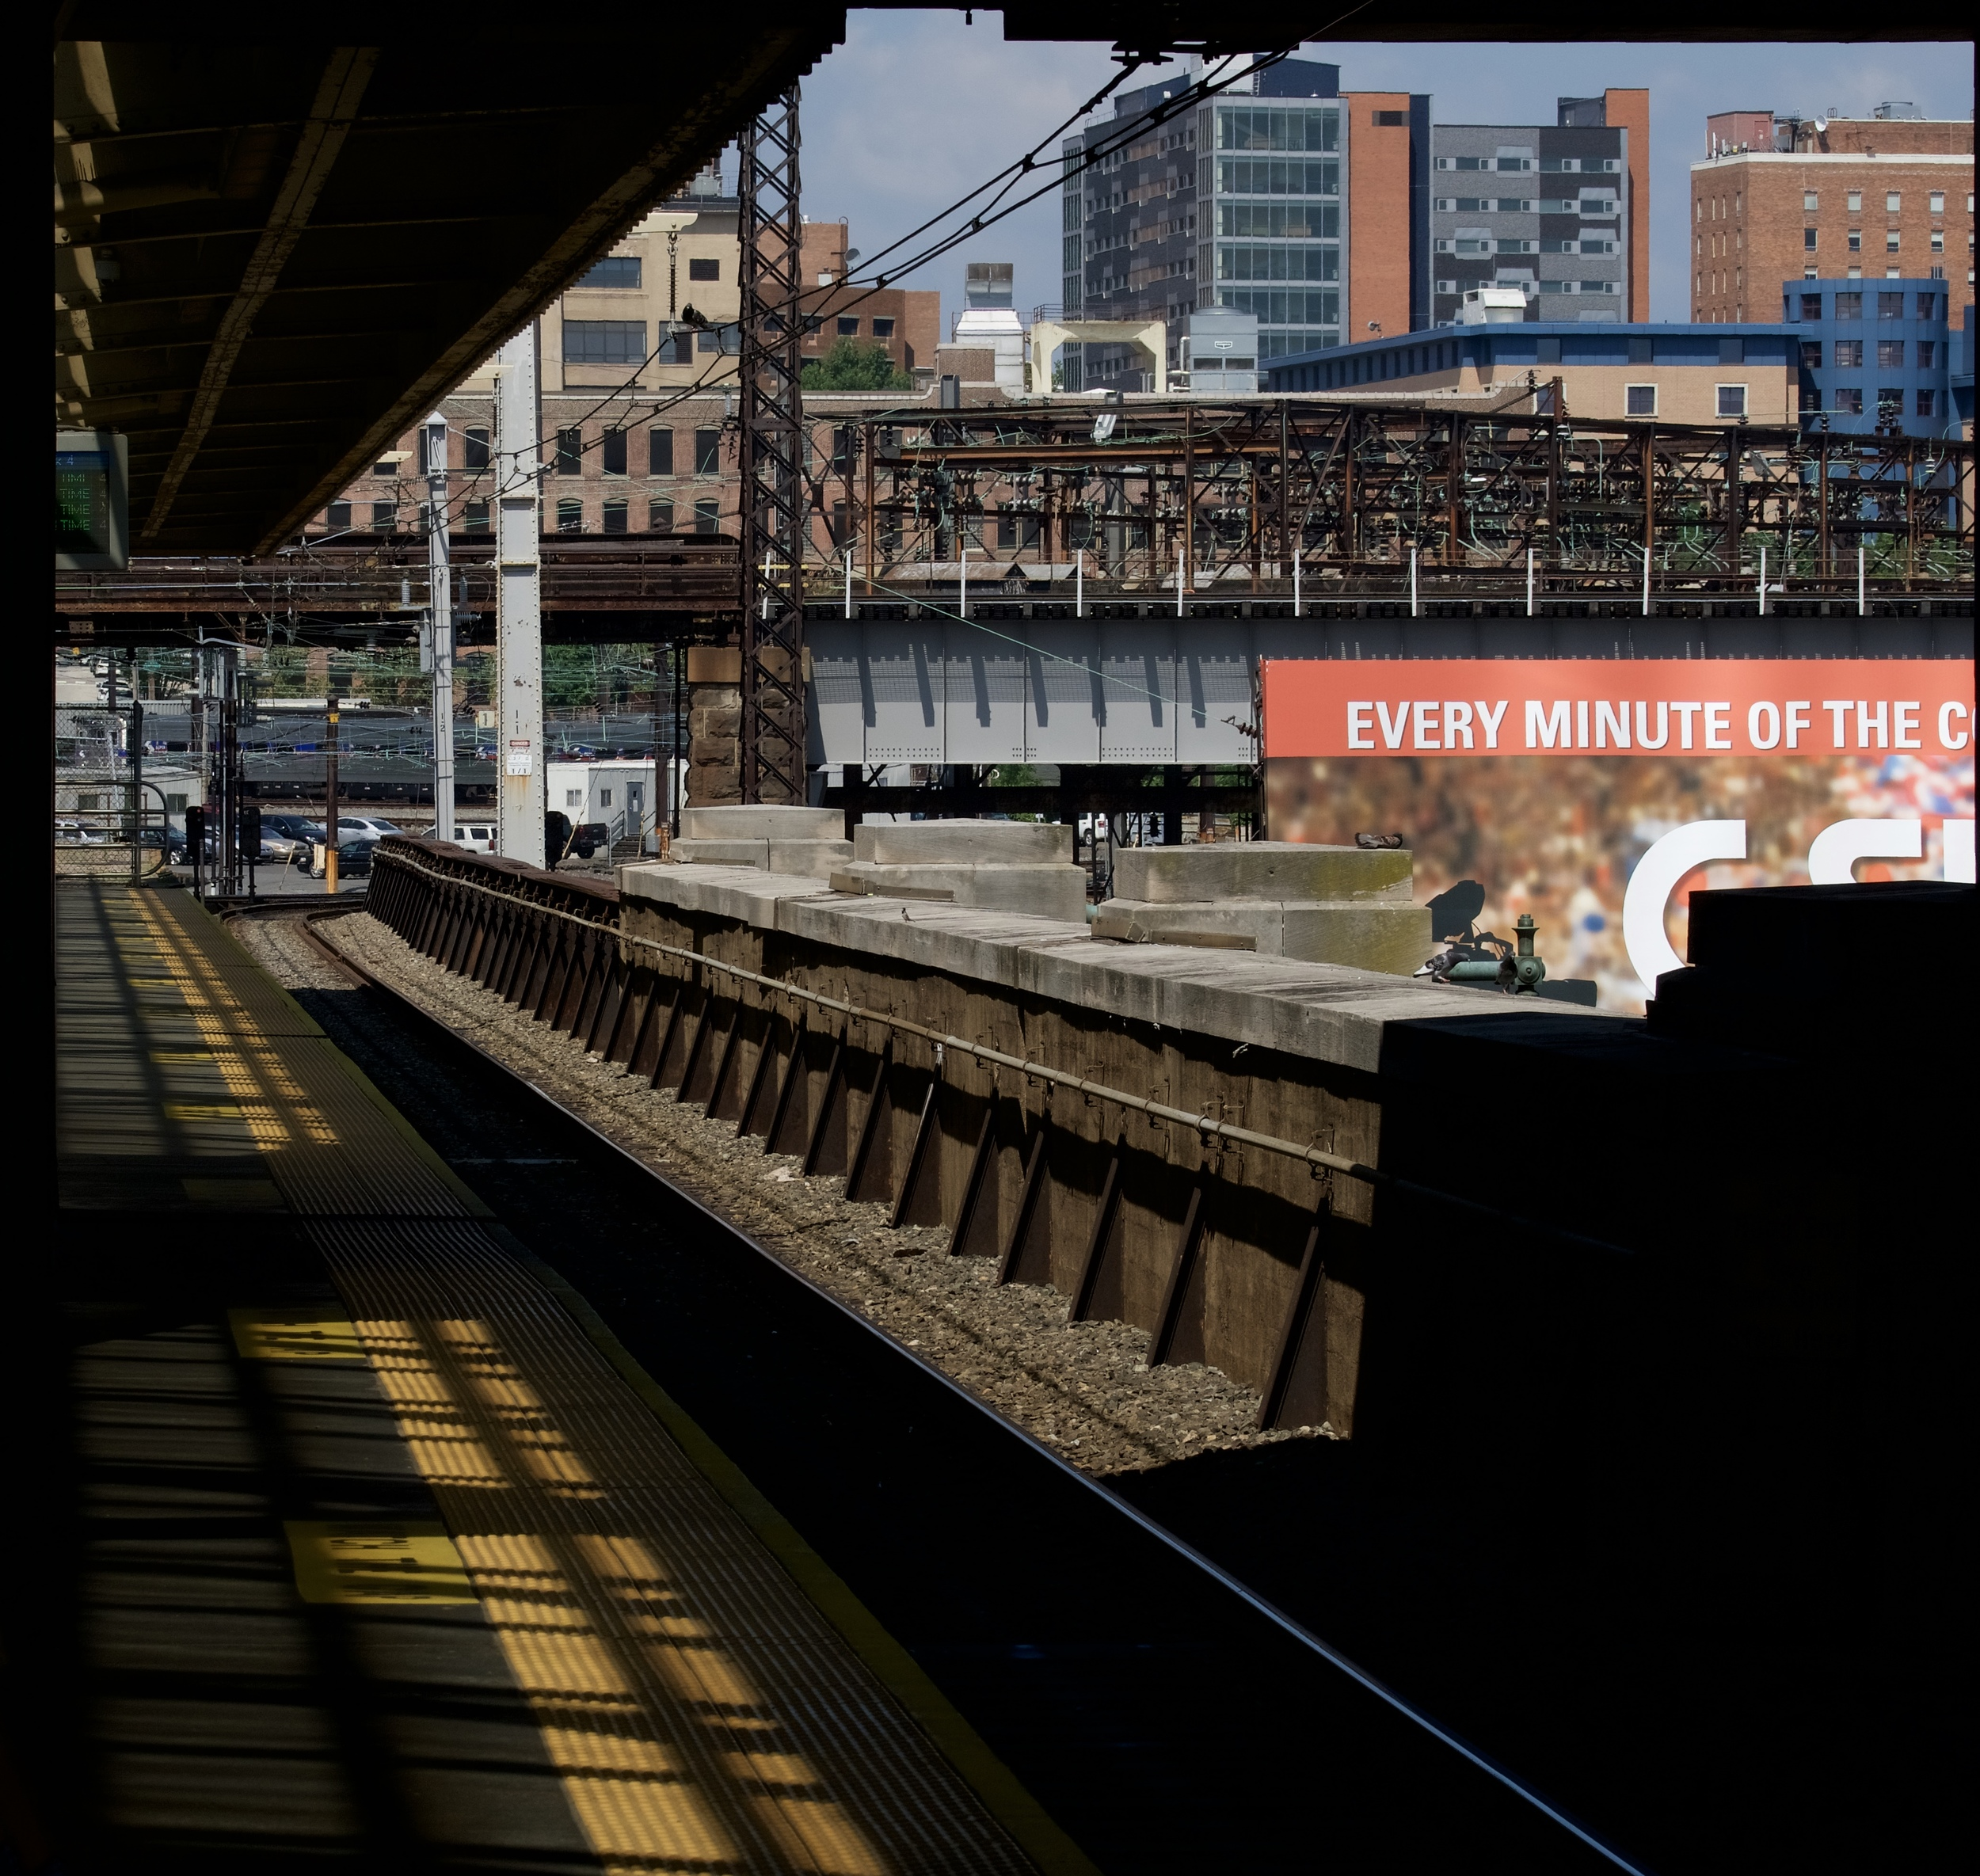 From a platform at 30th Street Station: Sony a6300 with Sony FE 70-300mm f/4.5-5.6 G OSS at 70mm, ISO 125, f/11, 1/400; cropped